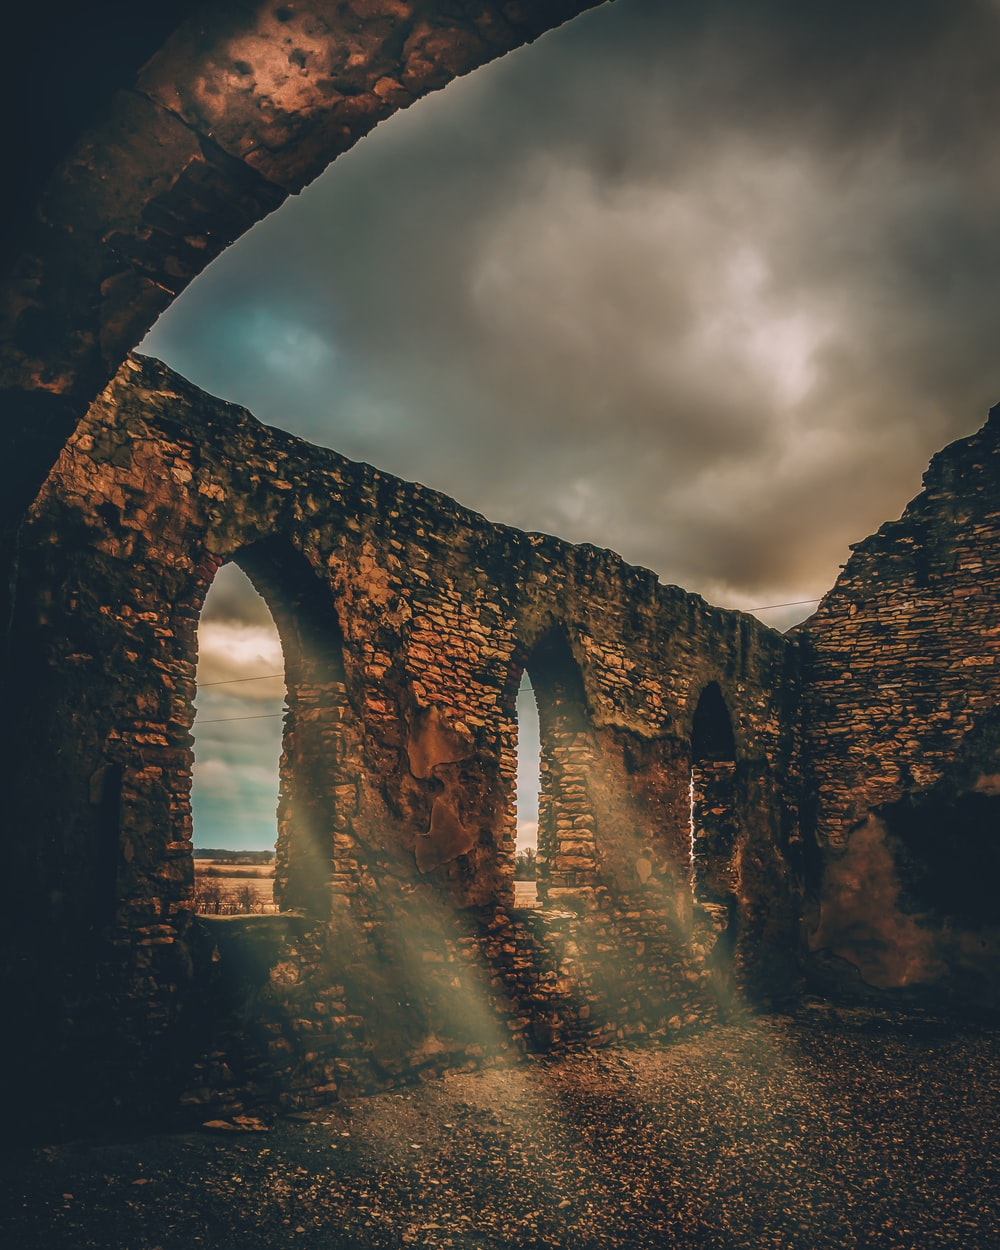 close photo of medieval building